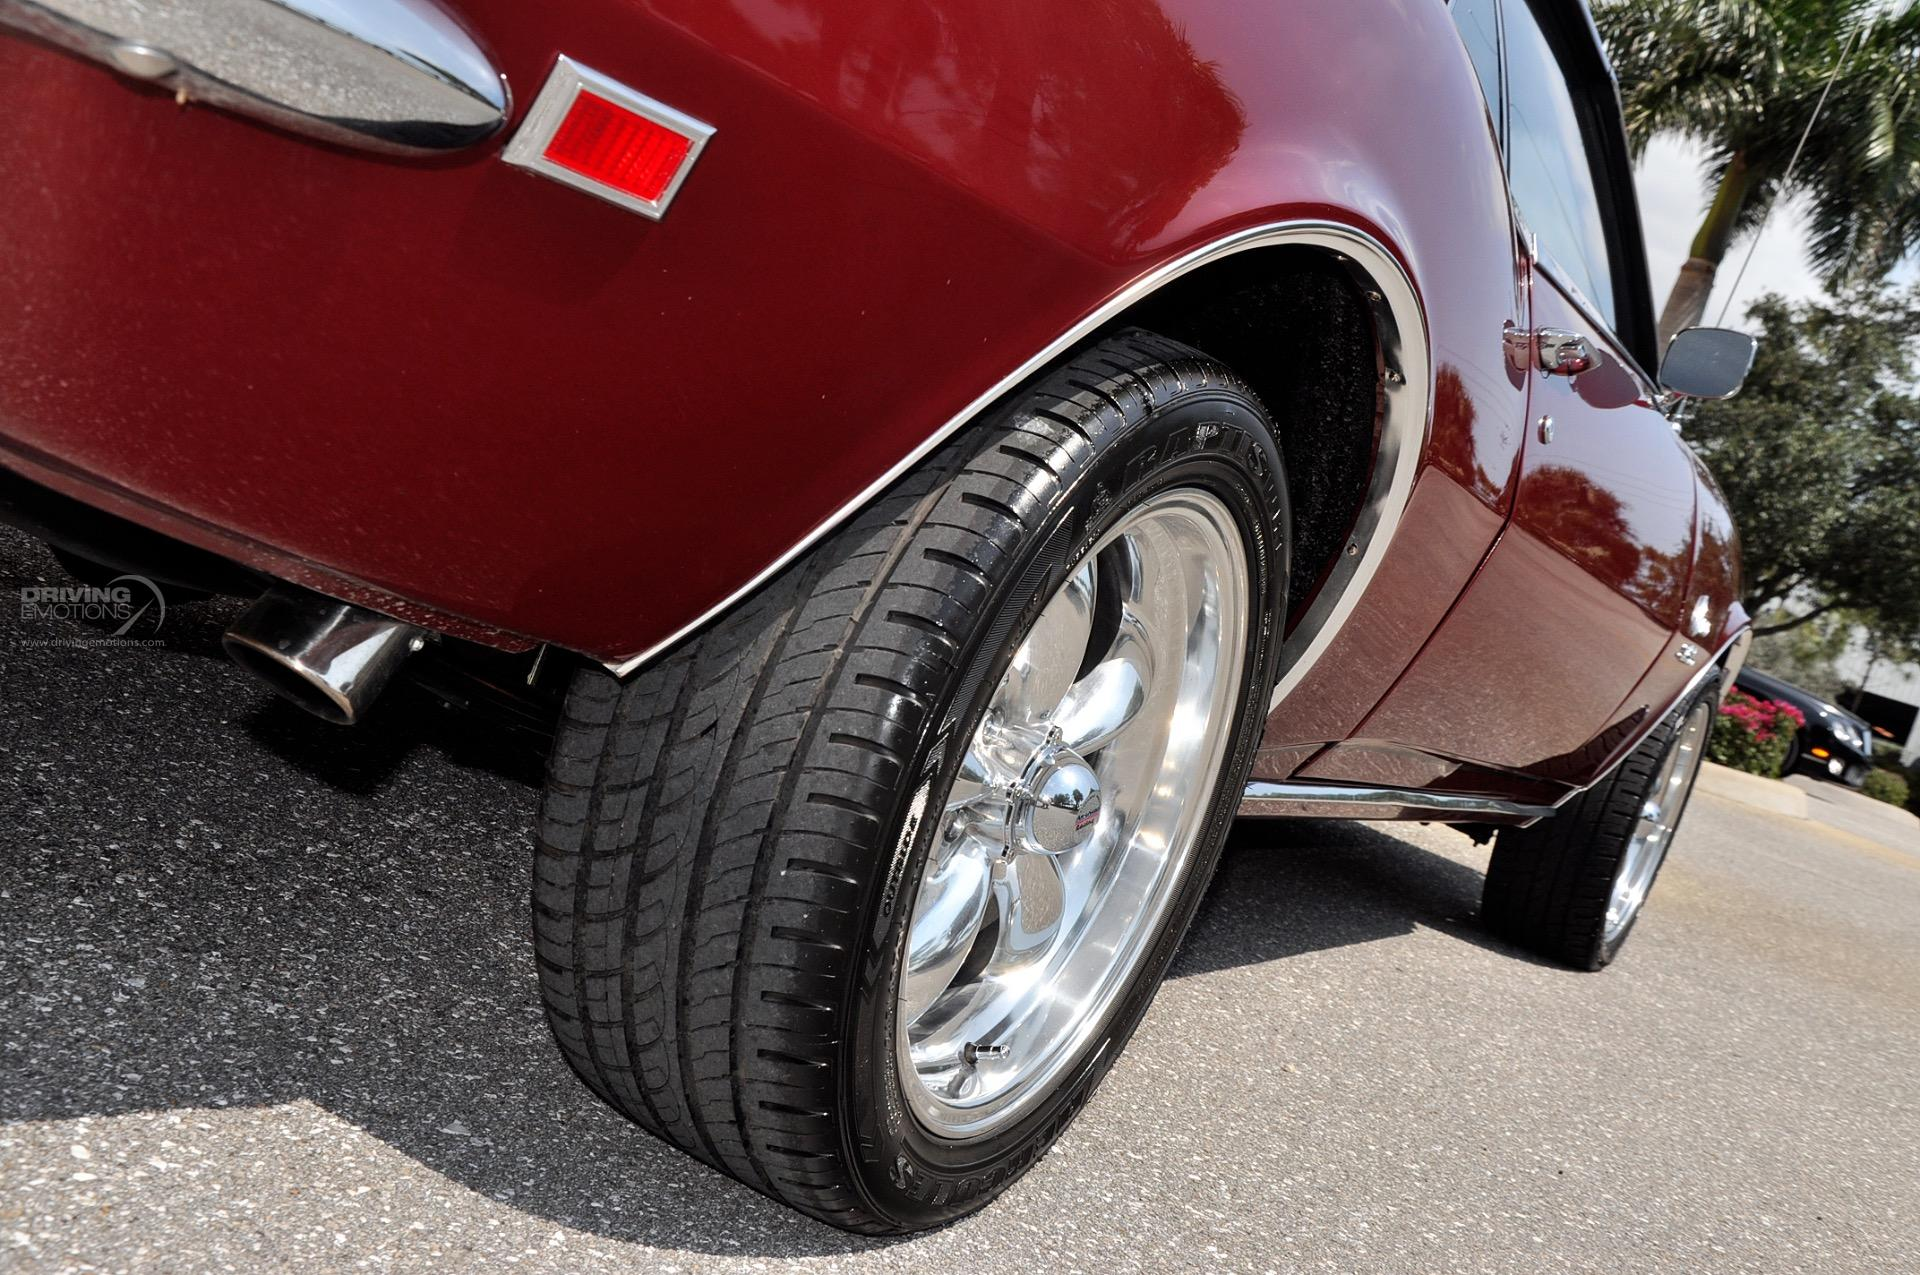 1968 Chevrolet Camaro Ss Stock 5879 For Sale Near Lake Park Fl Chevy Used